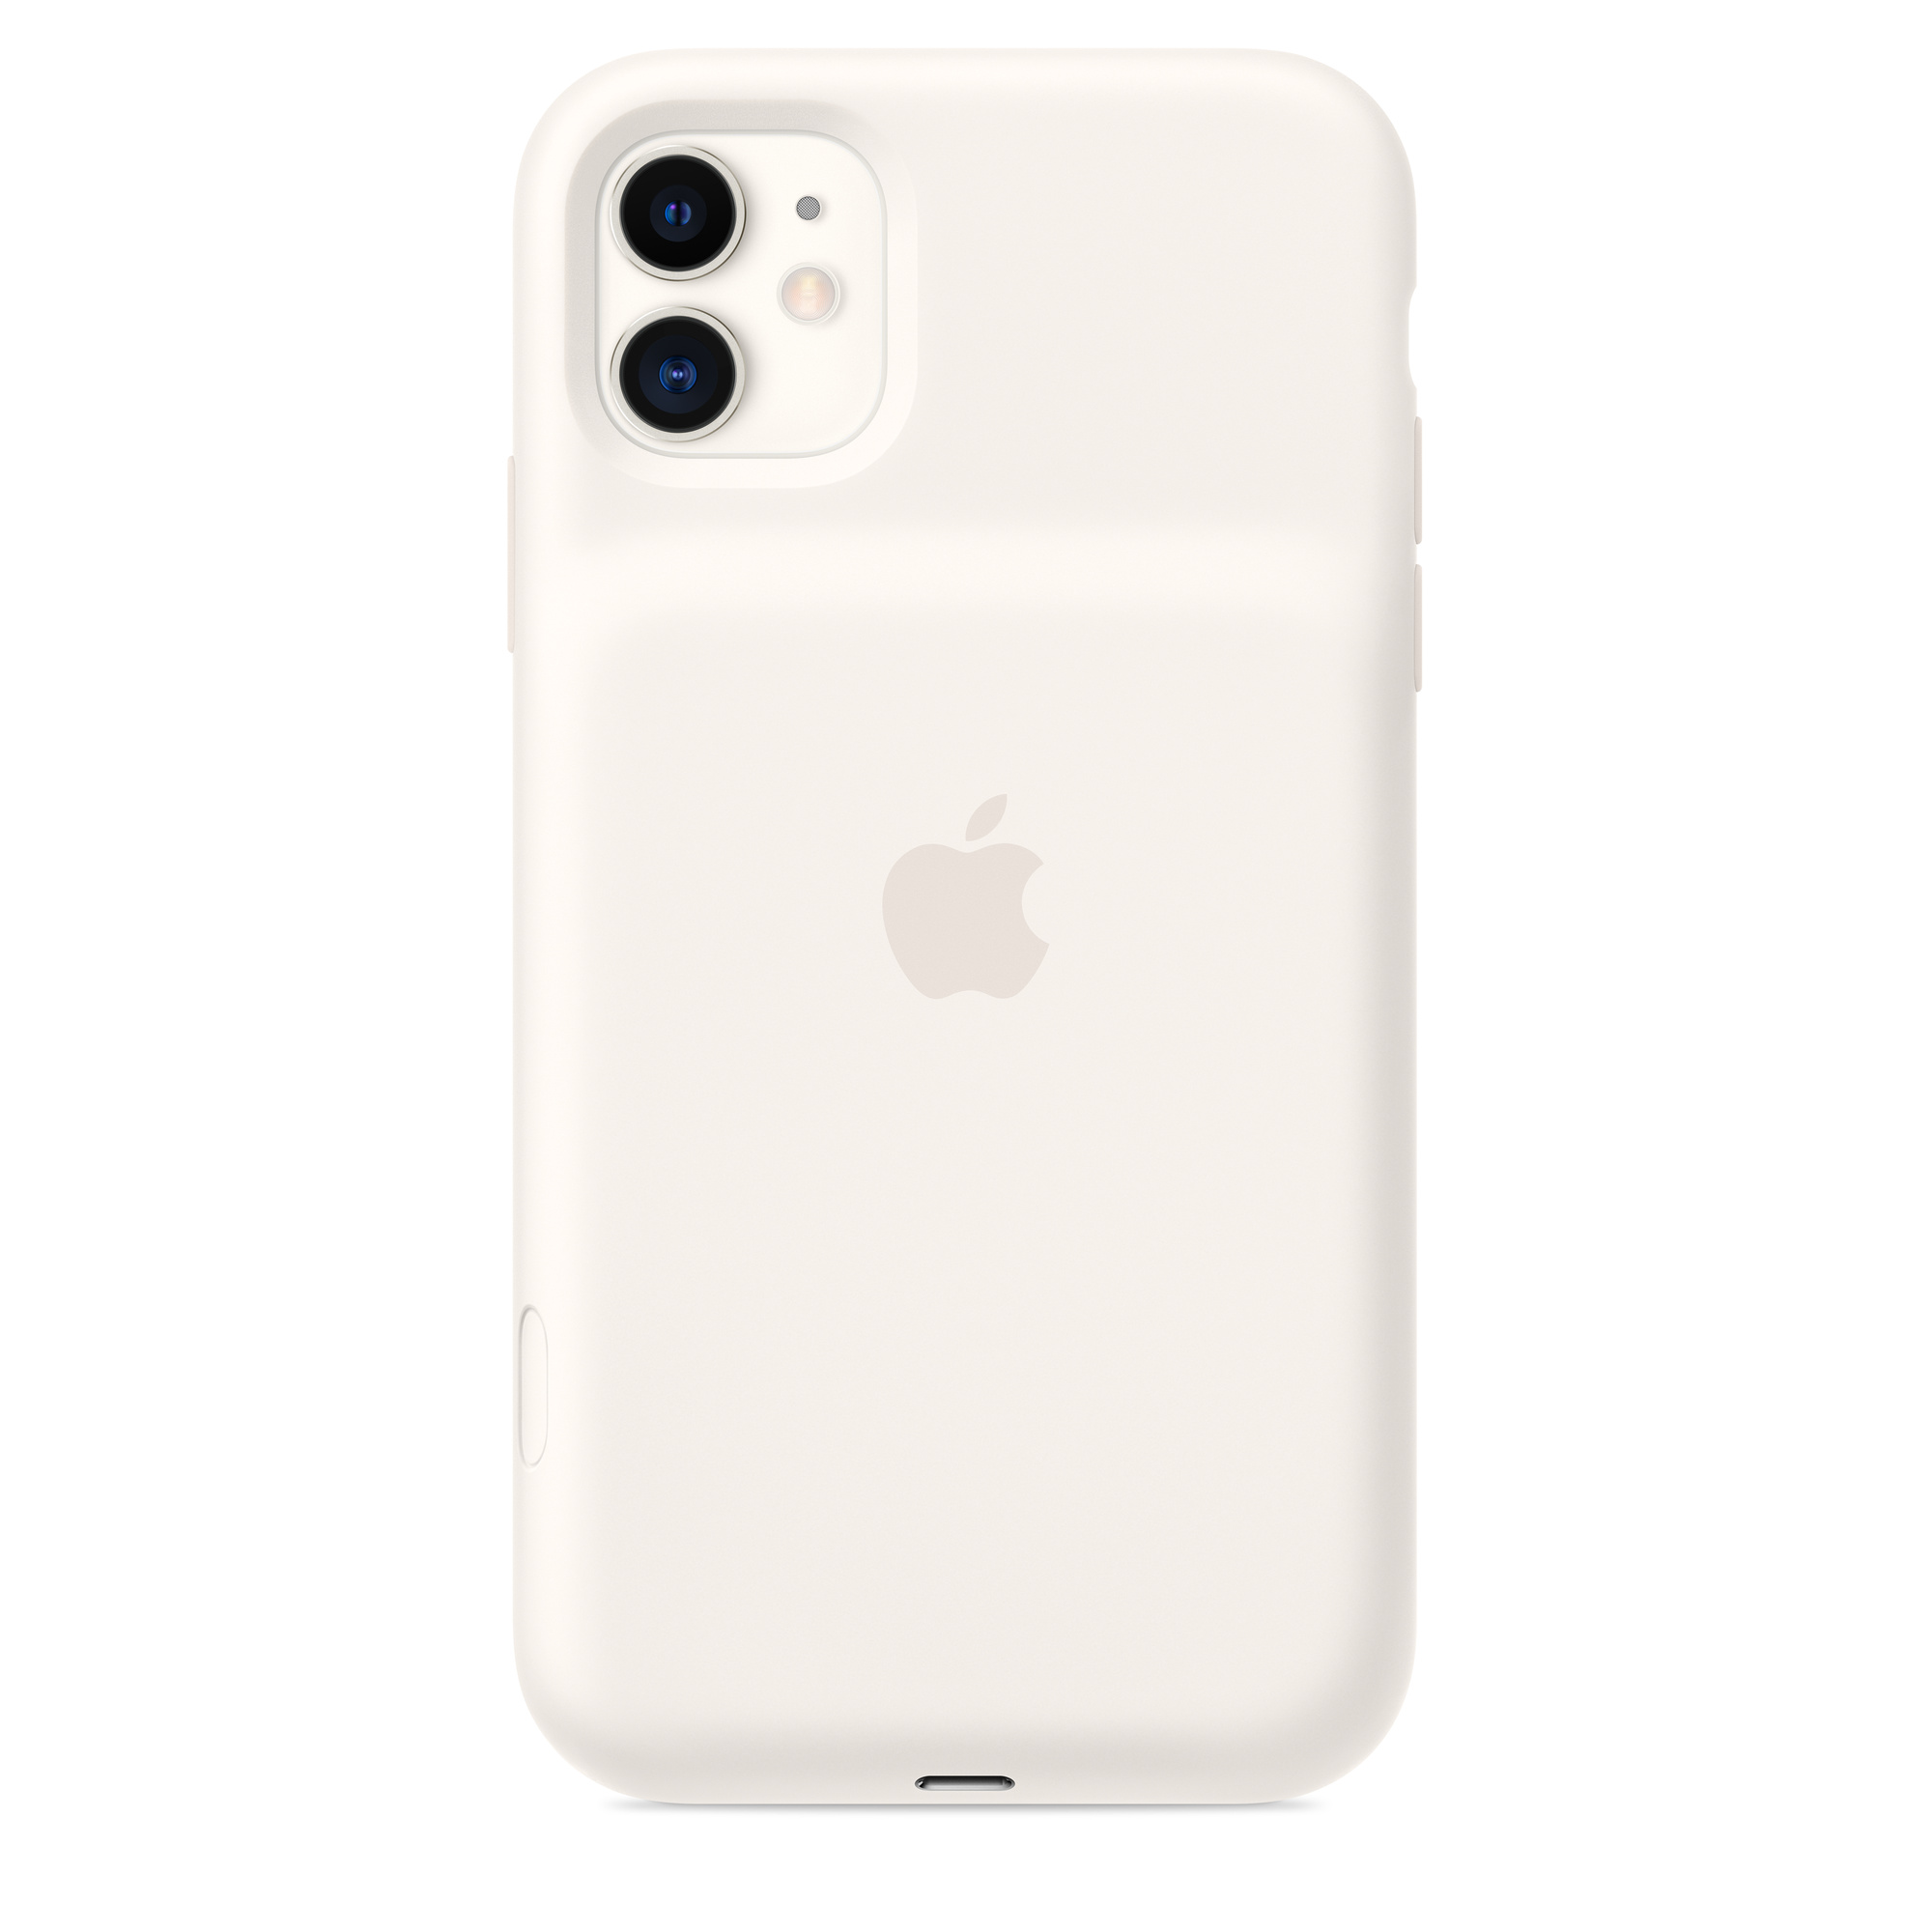 Iphone 11 Smart Battery Case Soft White Apple